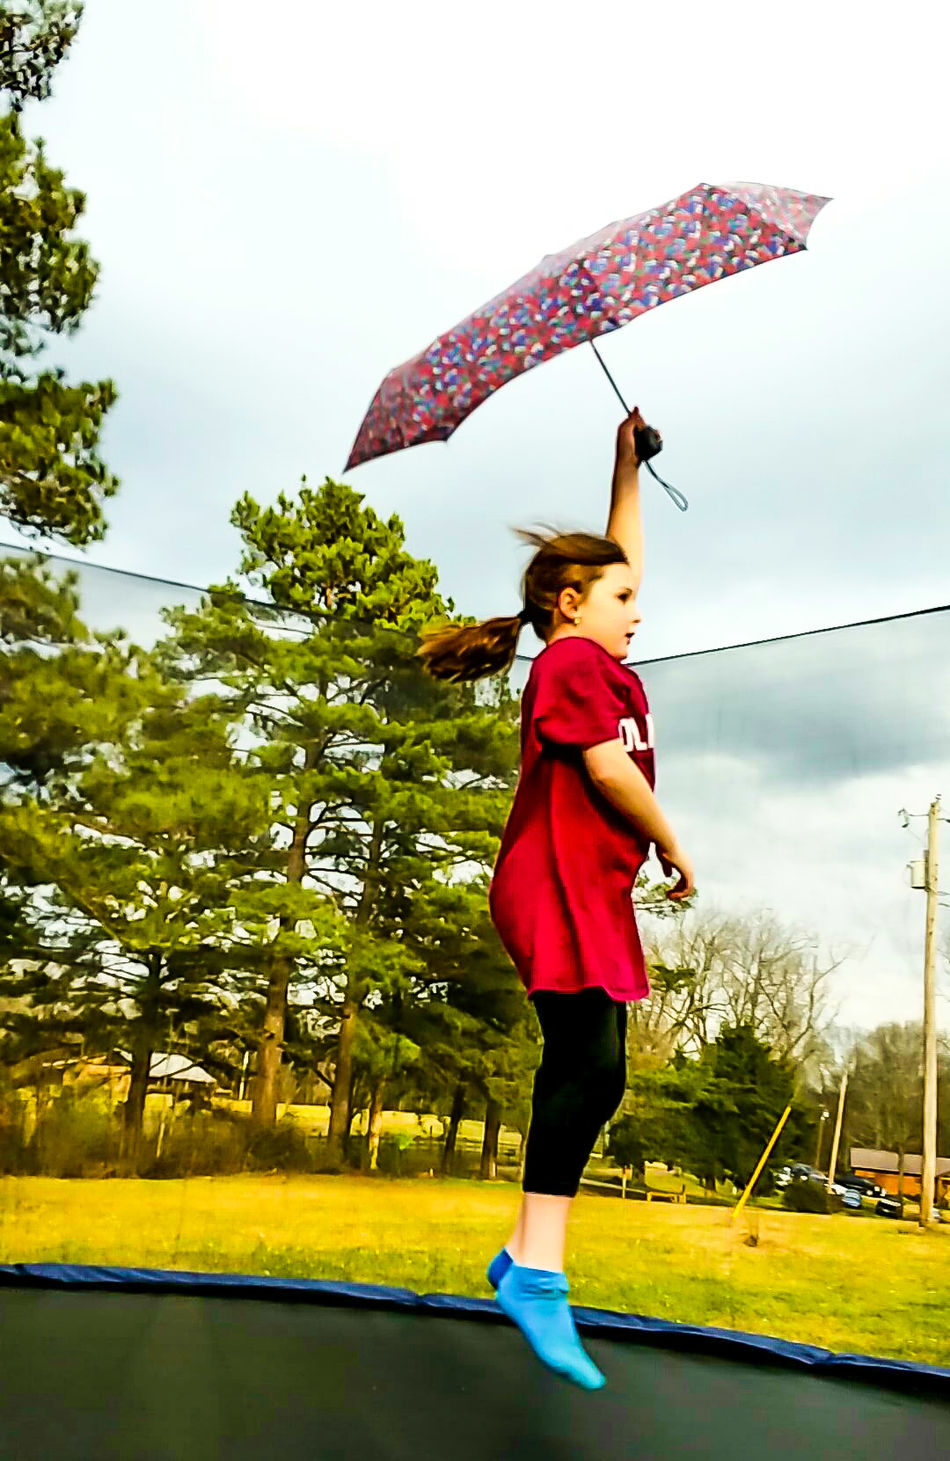 Full Length One Person Lifestyles Activity Tree Sport Jumping People Outdoors Wellbeing Motion Only Women One Woman Only Adults Only Taking A Shot - Sport Sky Day Trampoline Umbrella Learning To Fly Floating On Air Childhood Funny Moment Outdoor Activity Funny Kid